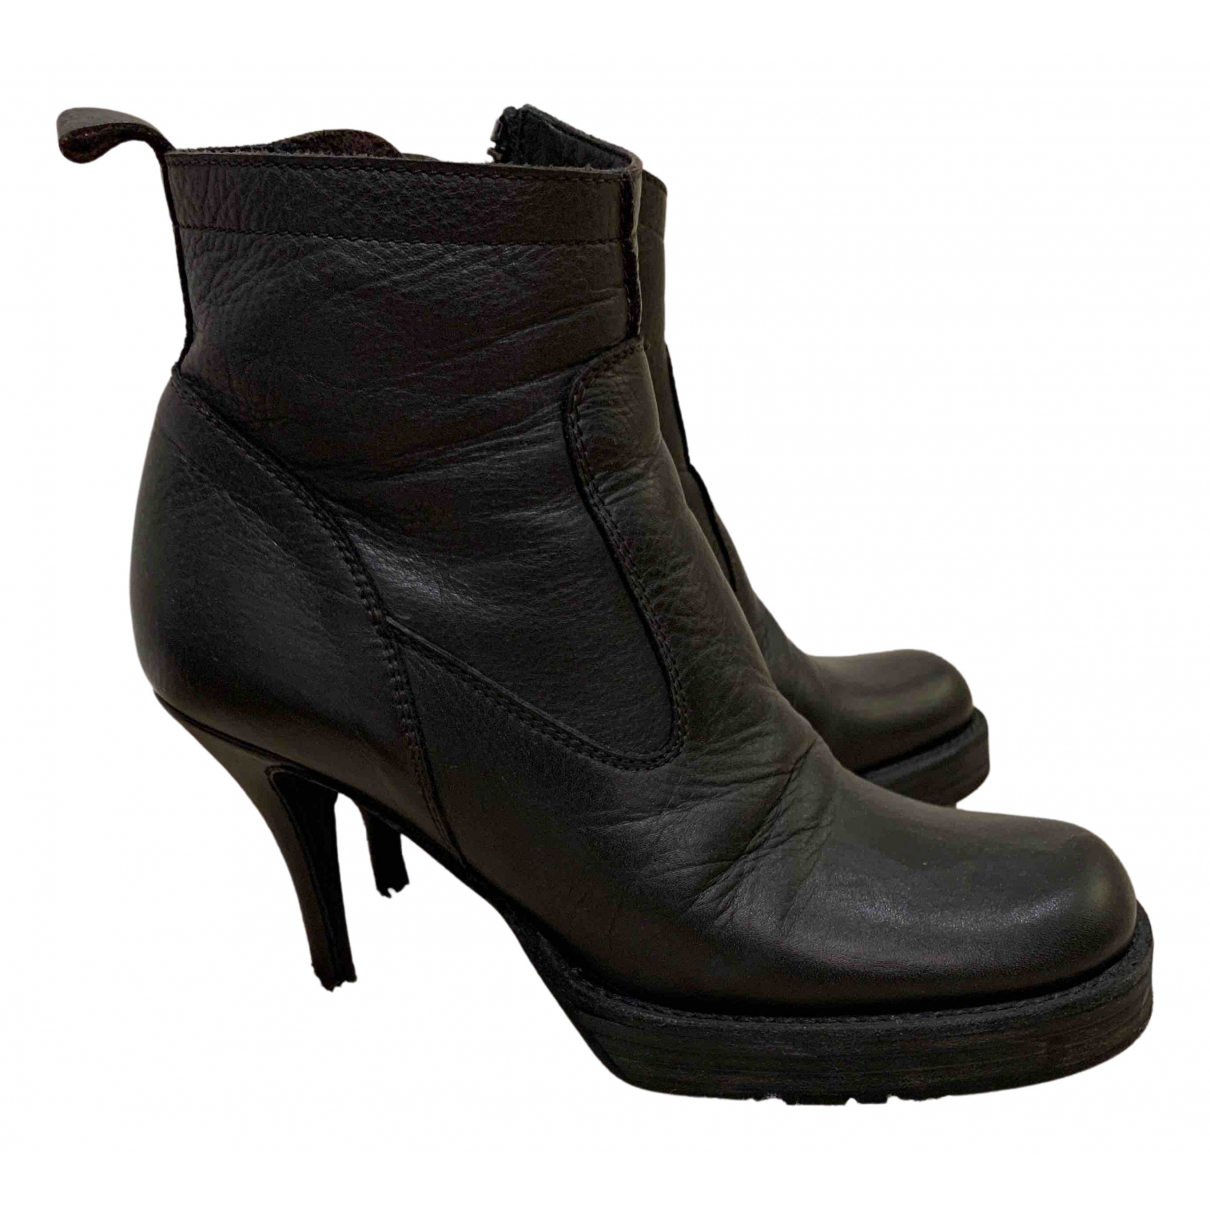 Rick Owens N Black Leather Ankle boots for Women 37 EU